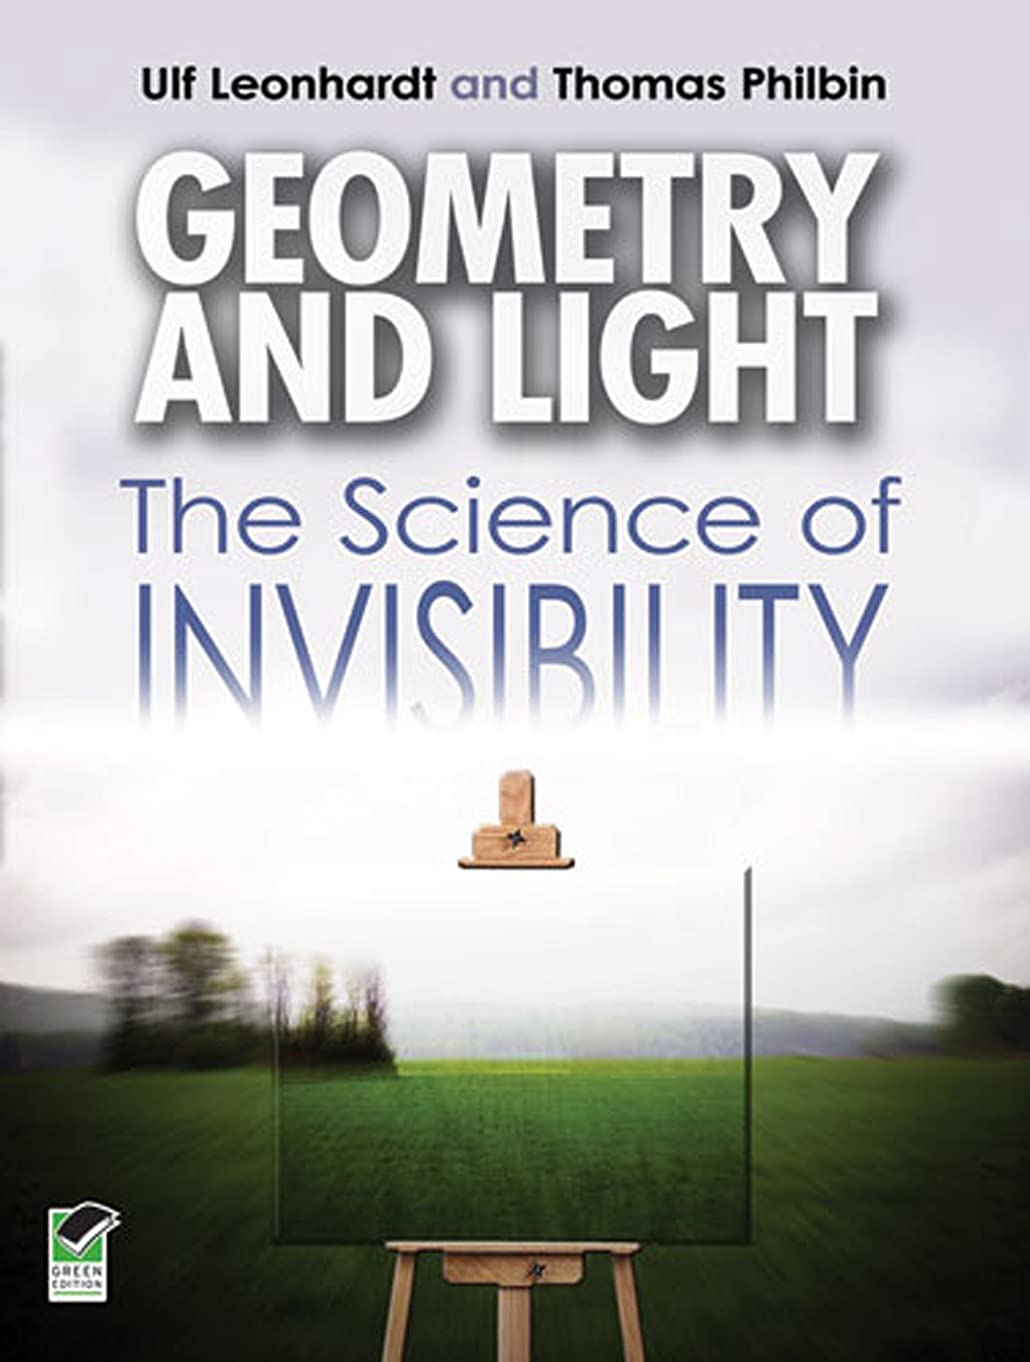 木製委員会好色なGeometry and Light: The Science of Invisibility (Dover Books on Physics) (English Edition)